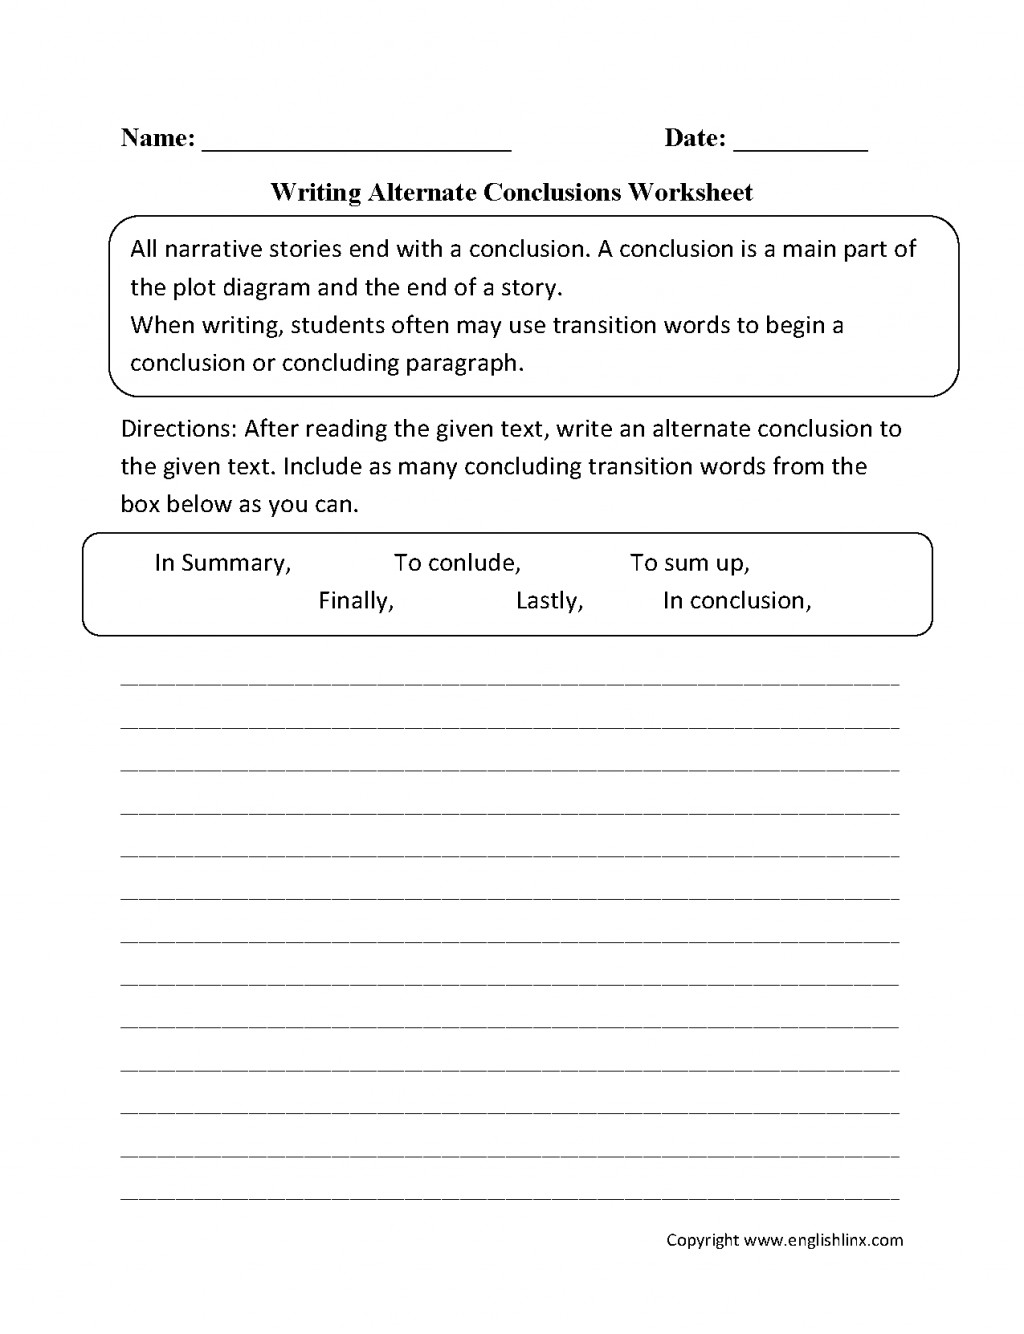 027 Englishlinx Writing Conclusions Worksheets Pertaining To Conclusion Paragraph Examples 5th Grade Research Impressive High School 4th A Large